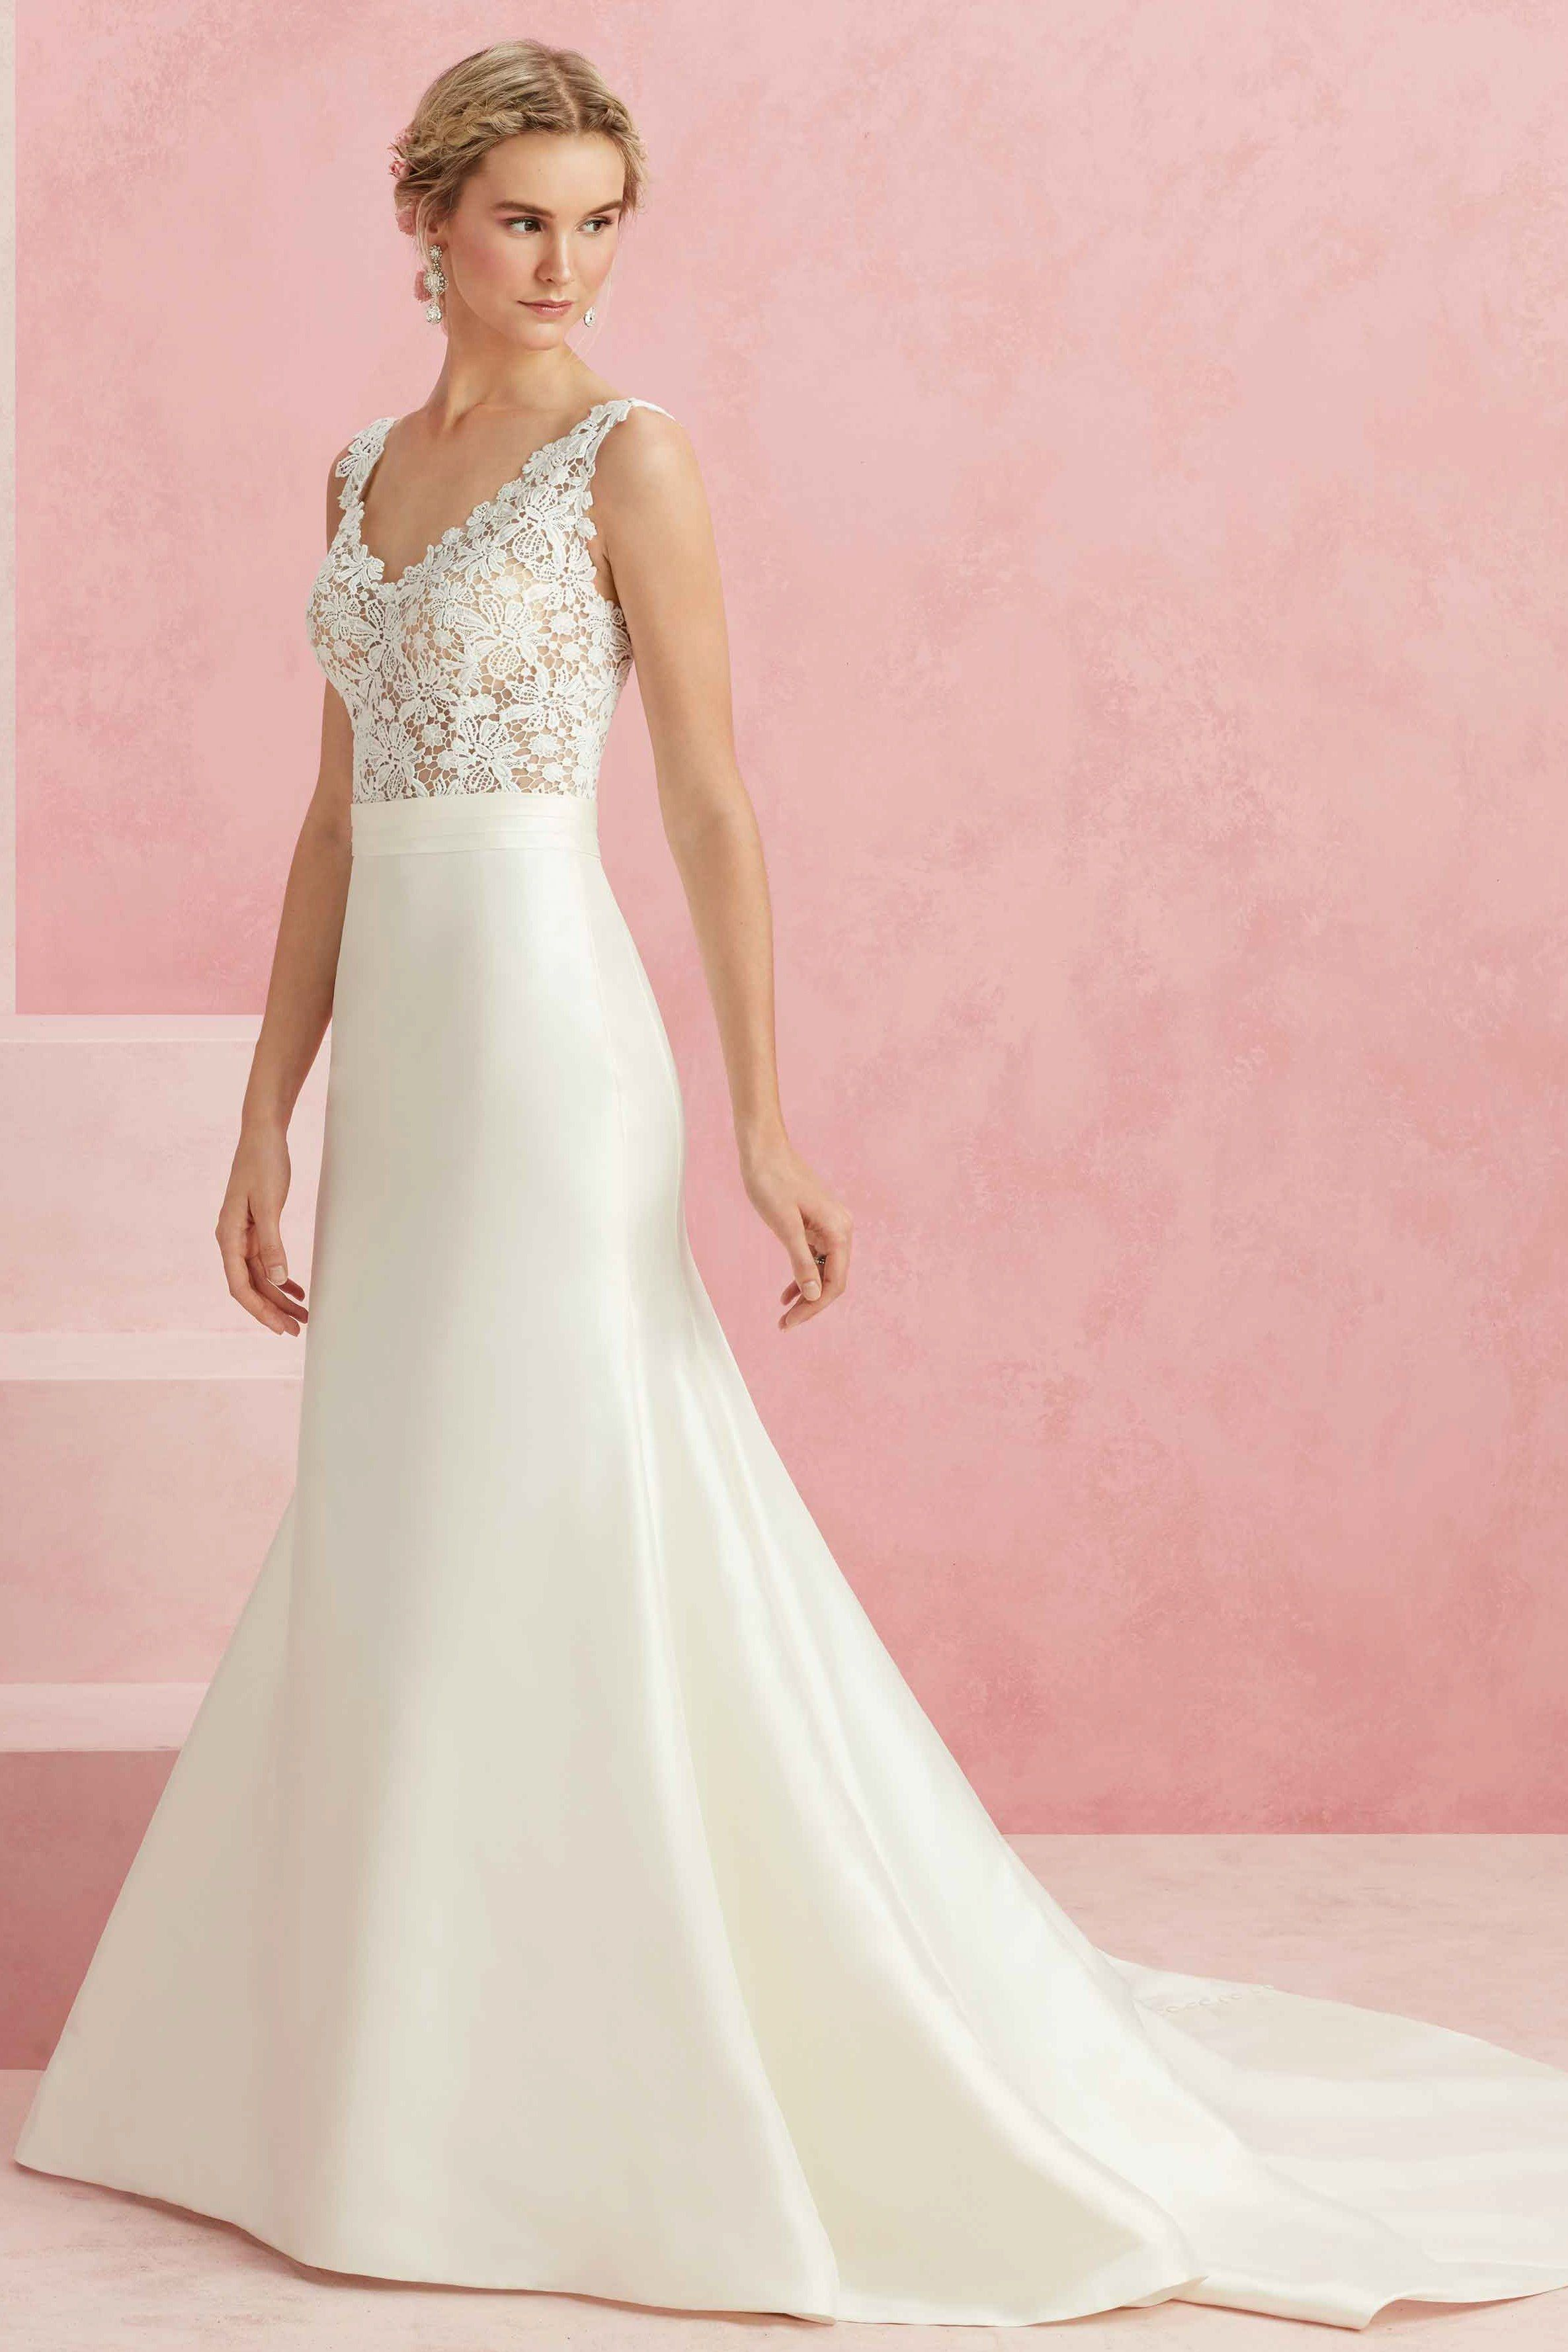 A Fit And Flare Gown With A V Neck Front And Back Crocheted Lace Top And Textured Satin Skirt Plus Wedding Dress Necklines Bridal Gowns Wedding Gown Gallery